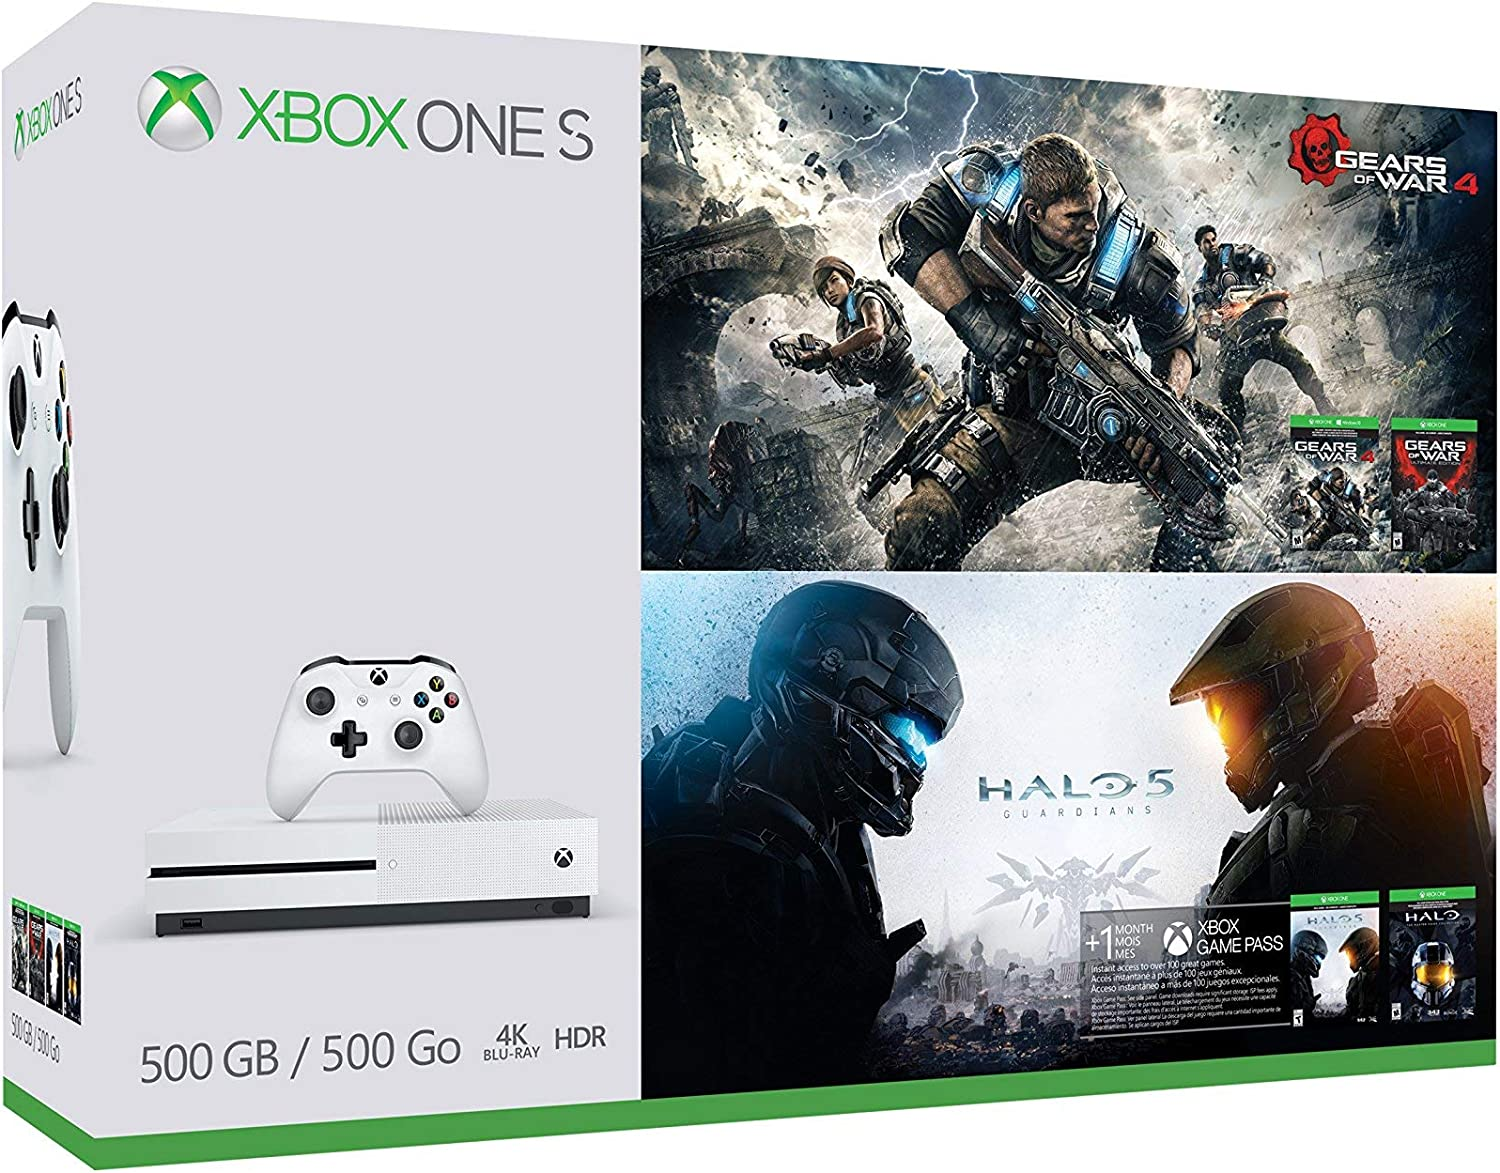 Xbox One S 500GB Console - Gears of War & Halo Special Edition Bundle (Renewed)